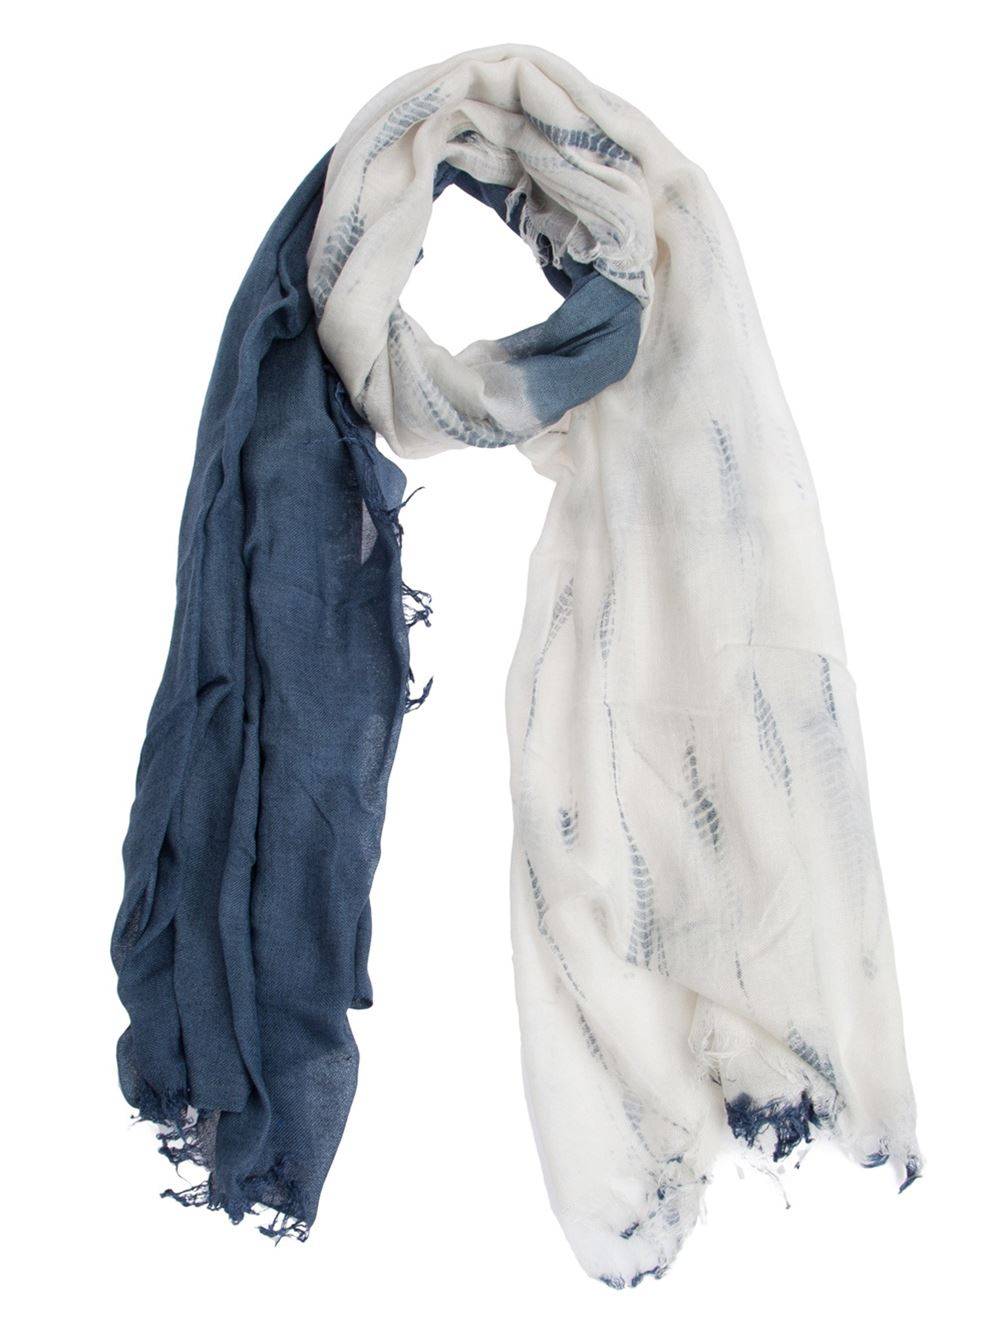 Suzusan tie-dye print scarf Free Shipping Outlet Sale The Cheapest Best Prices For Sale Good Selling Cheap Price Very Cheap Online CPVsm